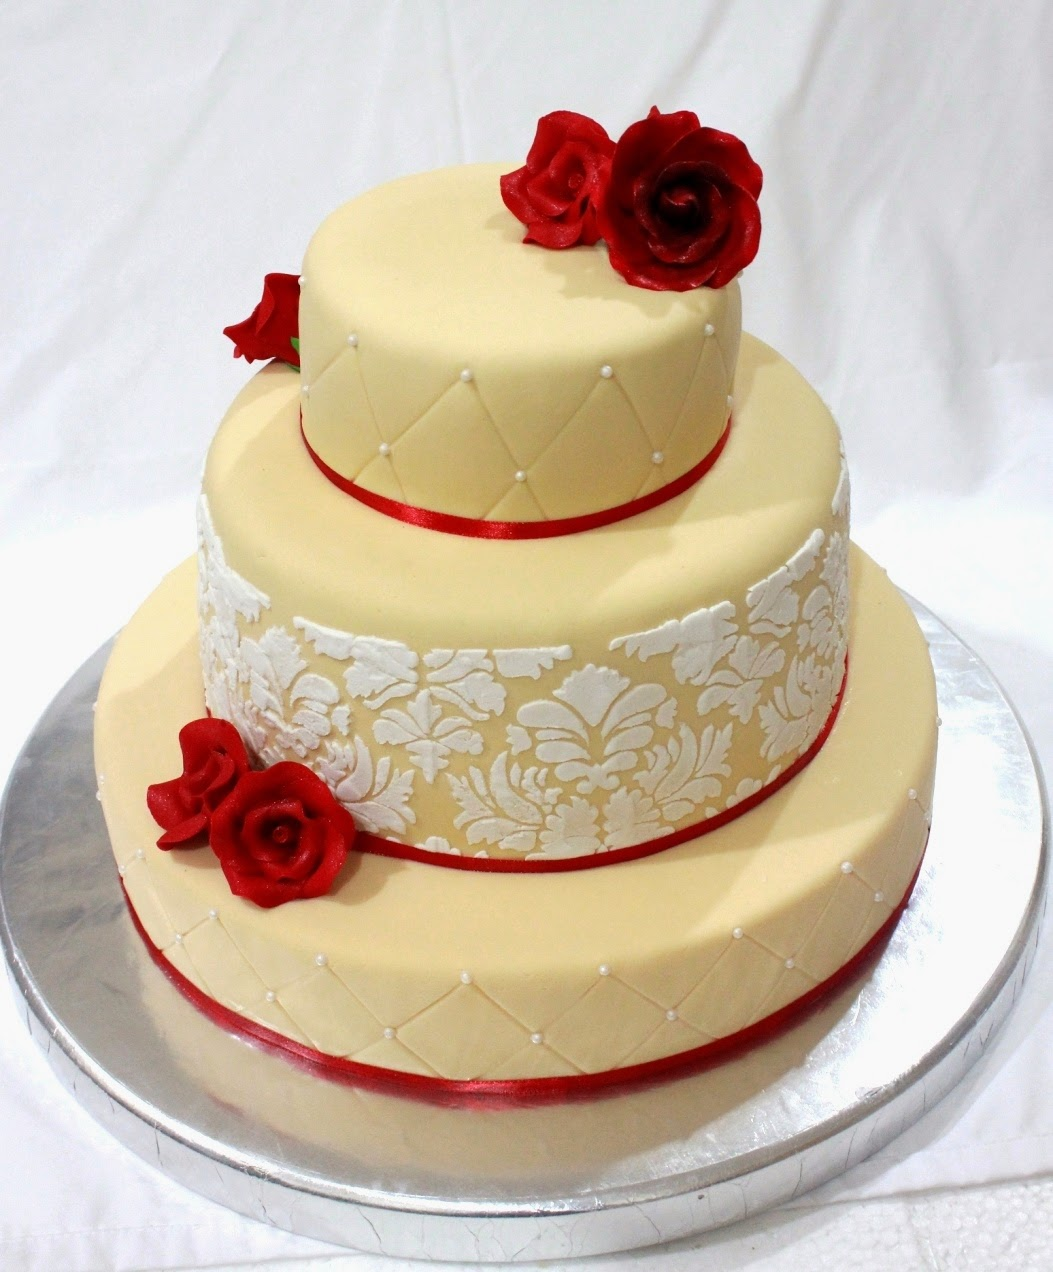 Dessert Inc: Damask Peach Wedding Cake with Red Roses